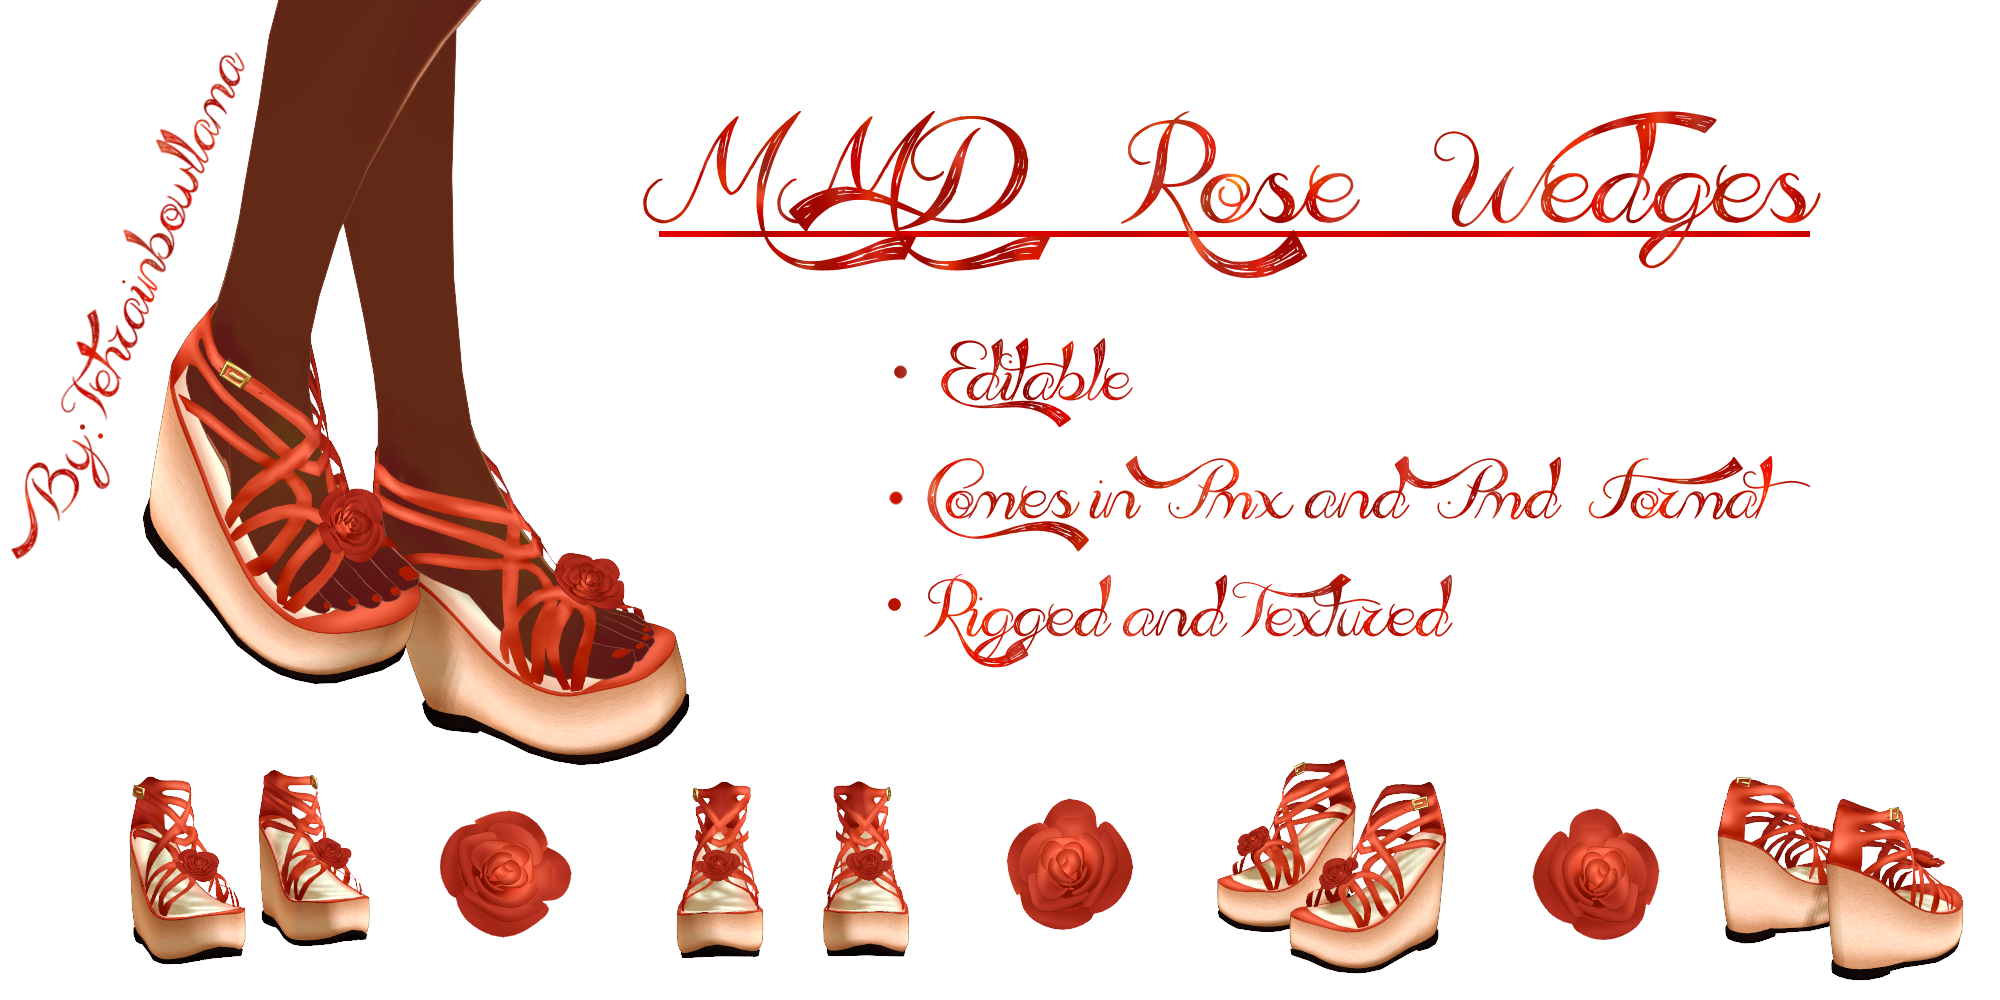 MMD Rose Wedges by Tehrainbowllama